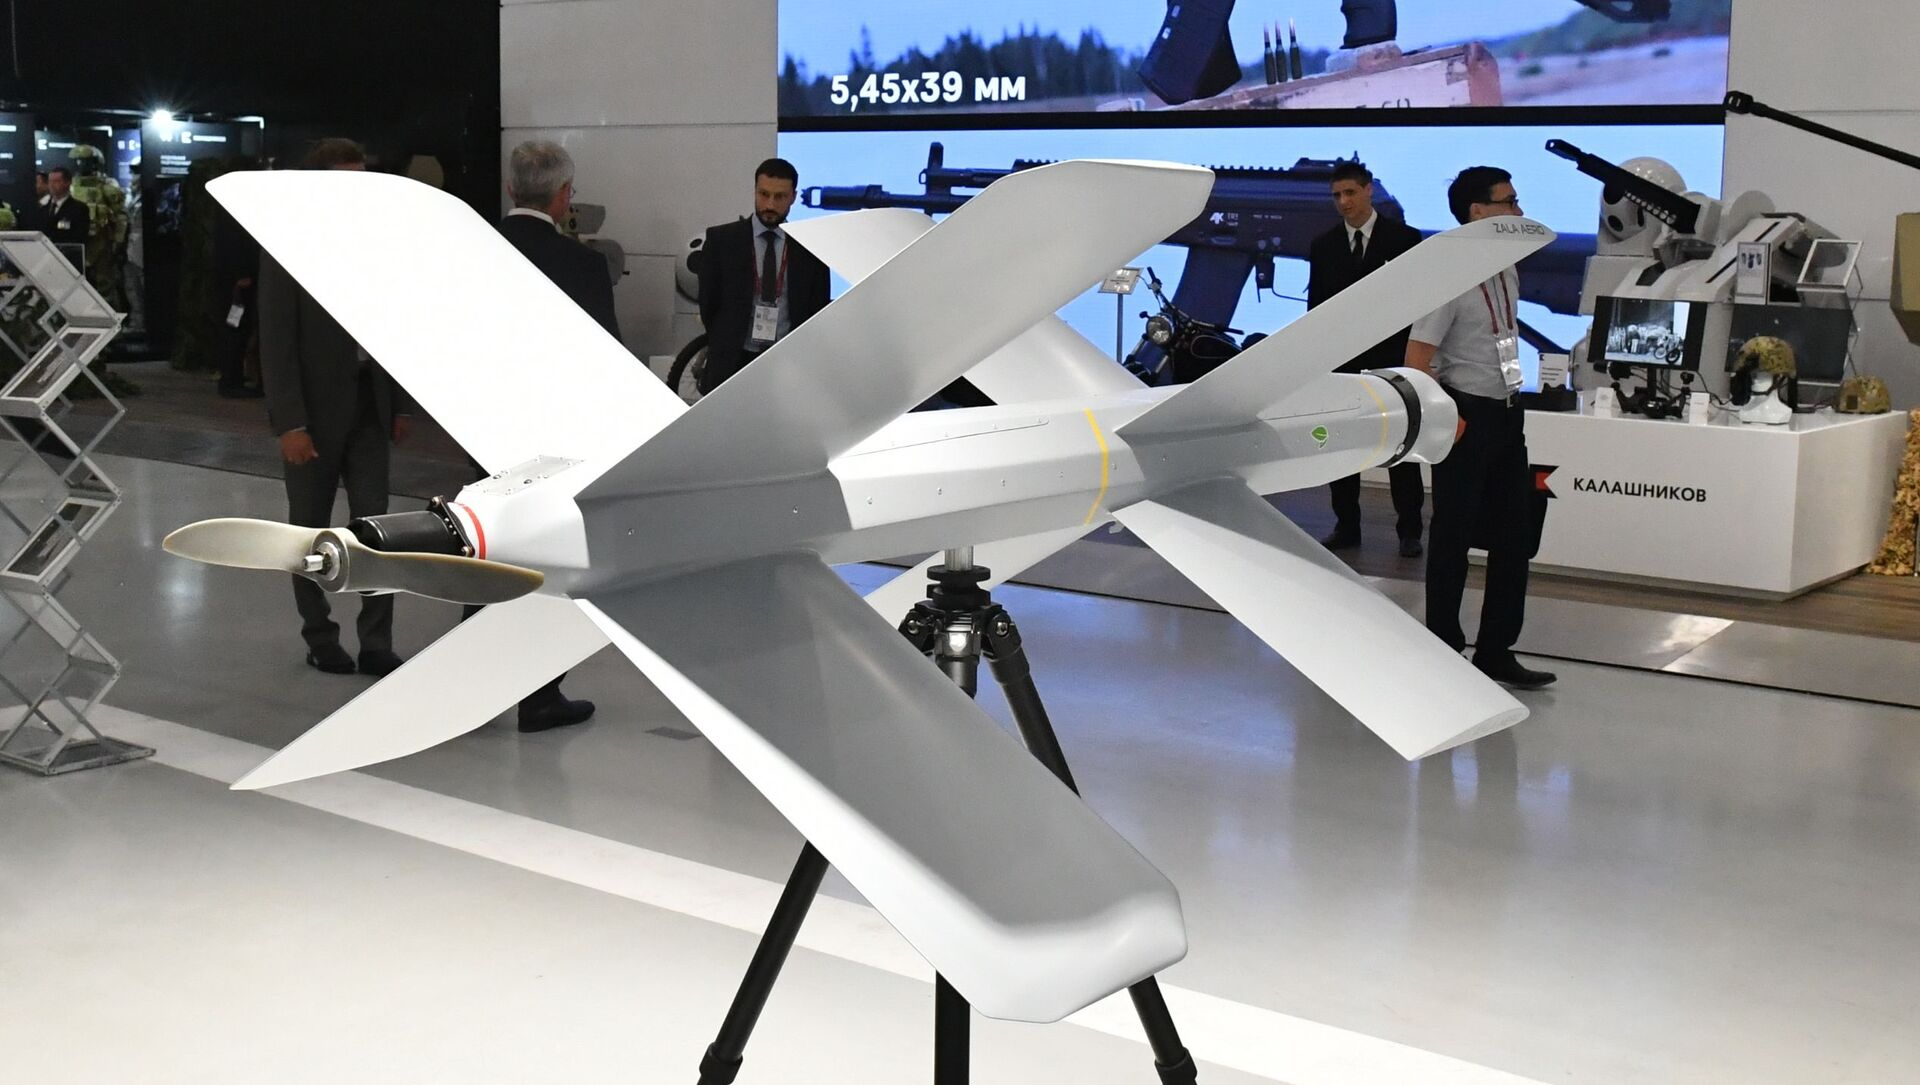 An unmanned aerial vehicle is displayed at the ARMY 2019 International Military and Technical Forum, in Kubinka, Moscow region, Russia - Sputnik International, 1920, 27.08.2021